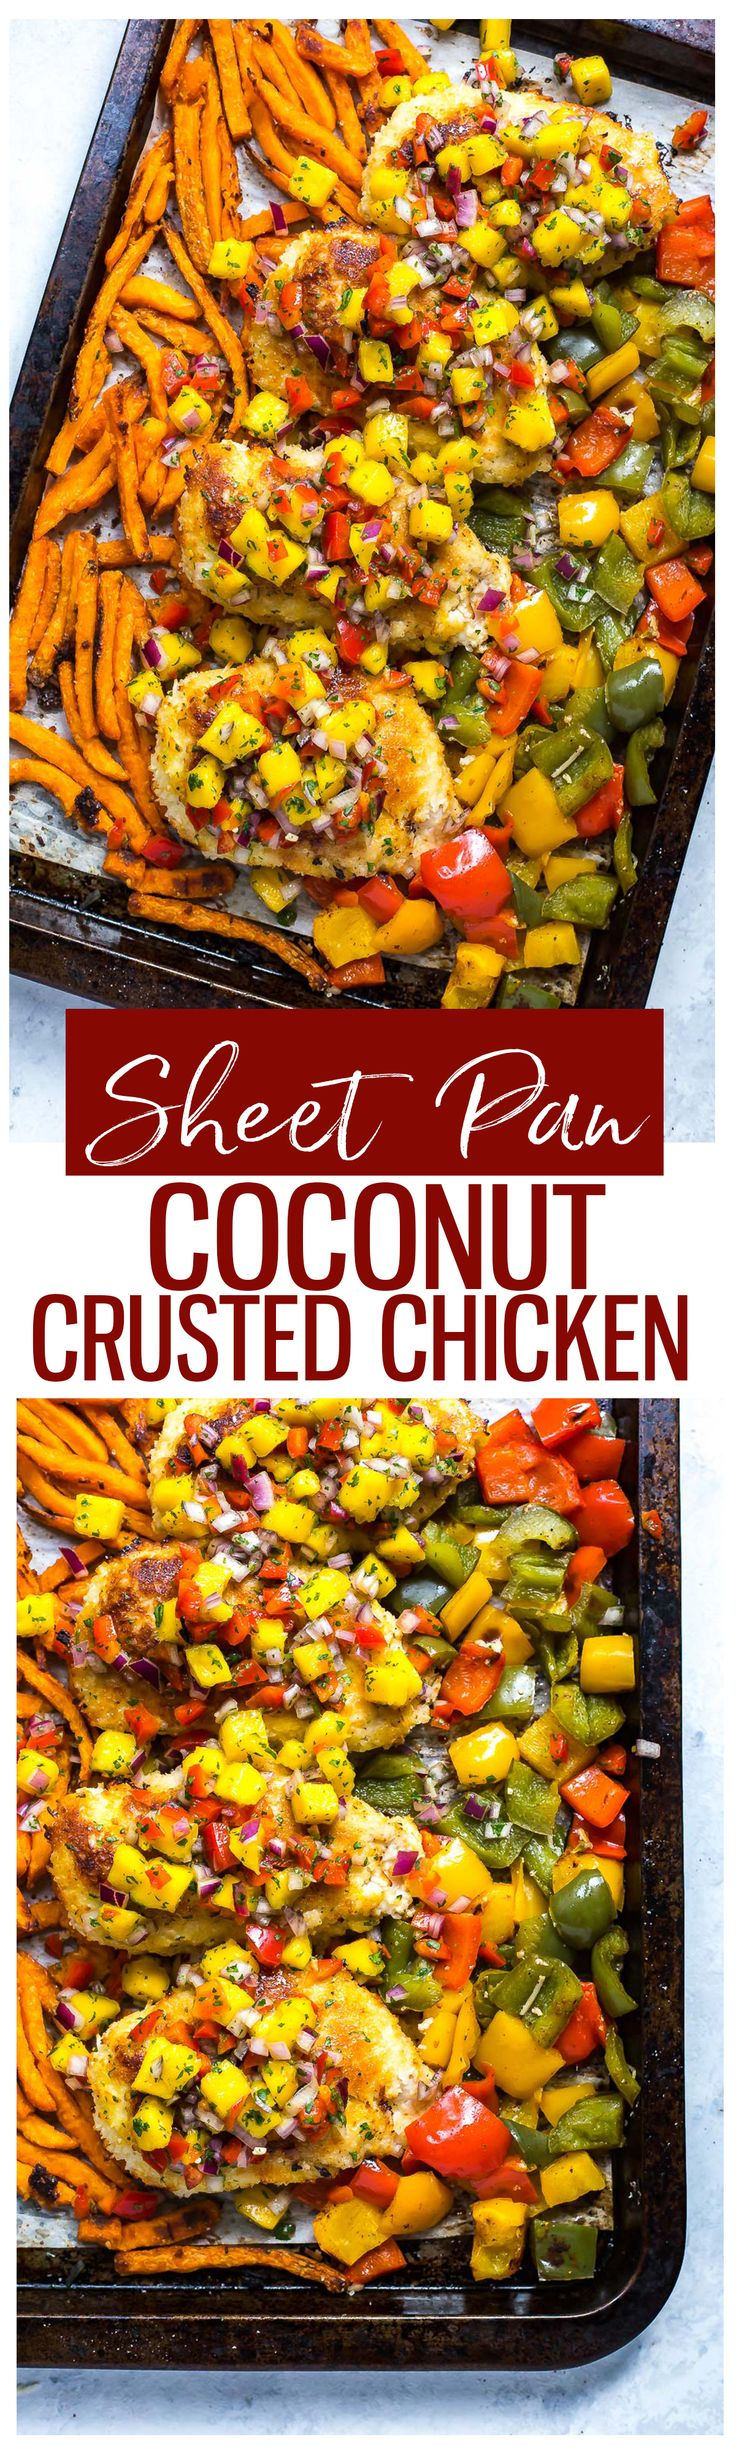 This Sheet Pan Coconut Crusted Chicken with mango salsa, bell peppers and sweet potato fries is the perfect dinner solution after a busy workday – and you can take the leftovers for lunch!